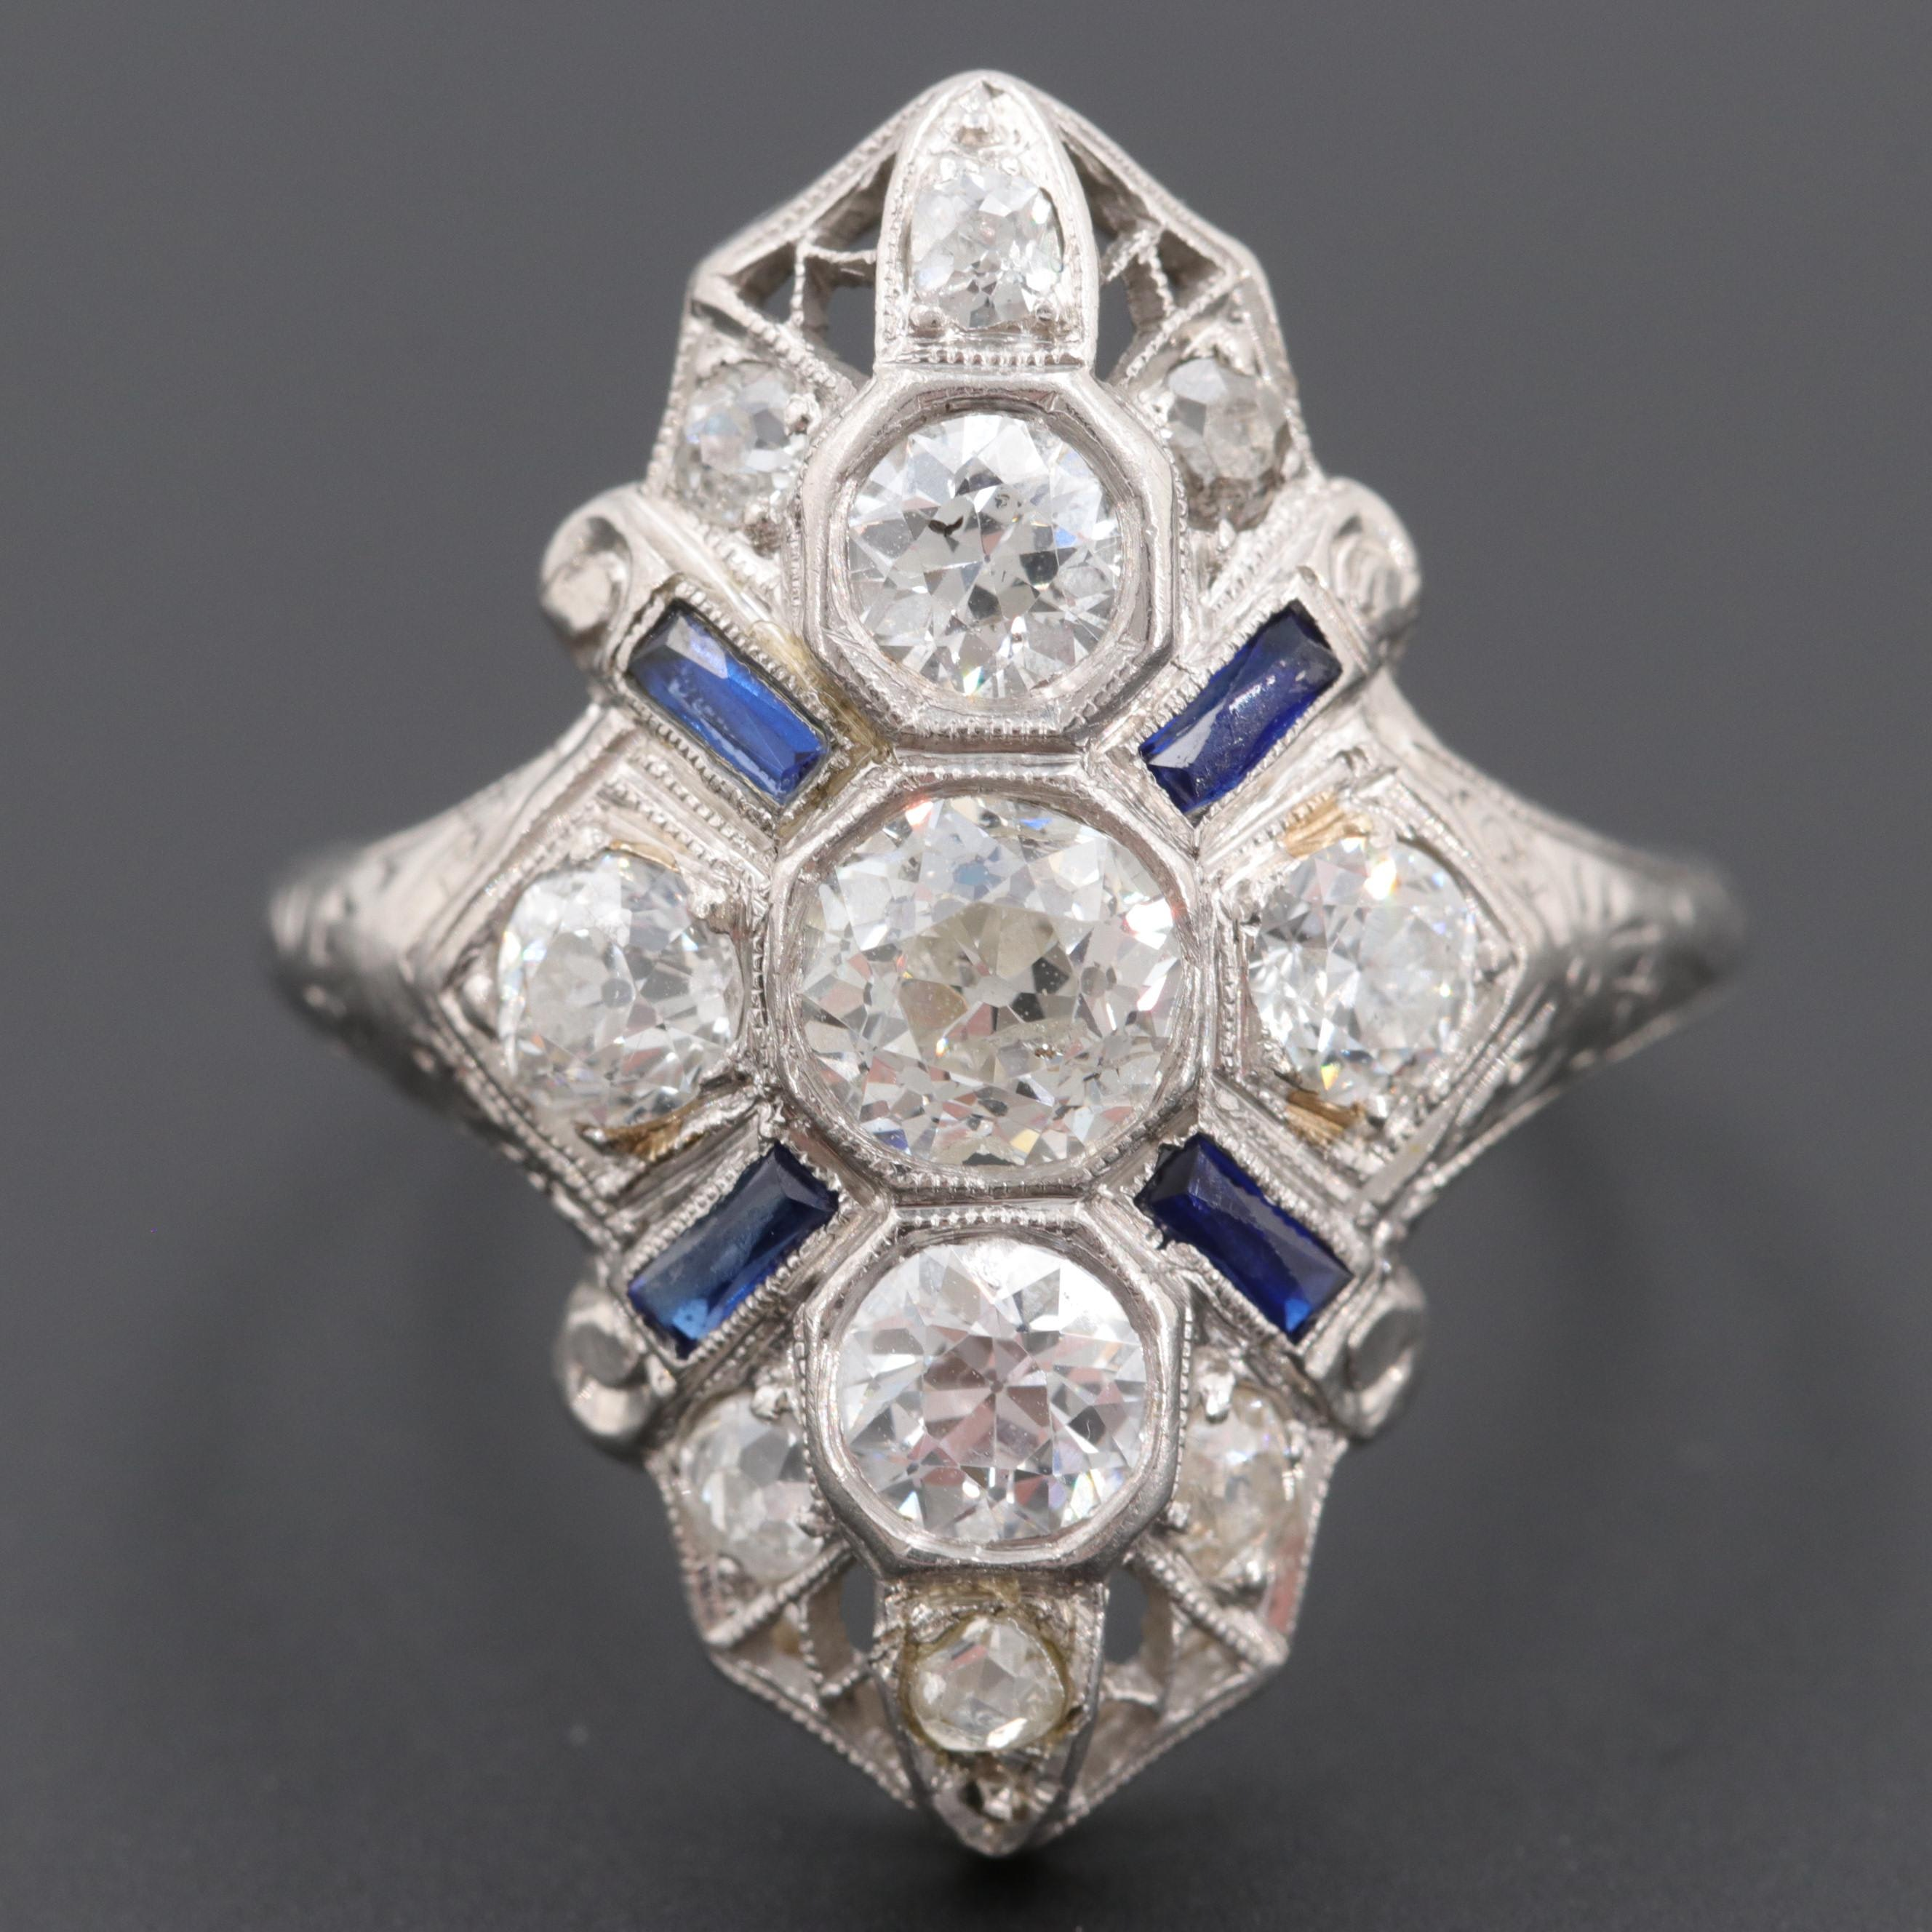 Edwardian Platinum 1.57 CTW Diamond and Synthetic Sapphire Ring